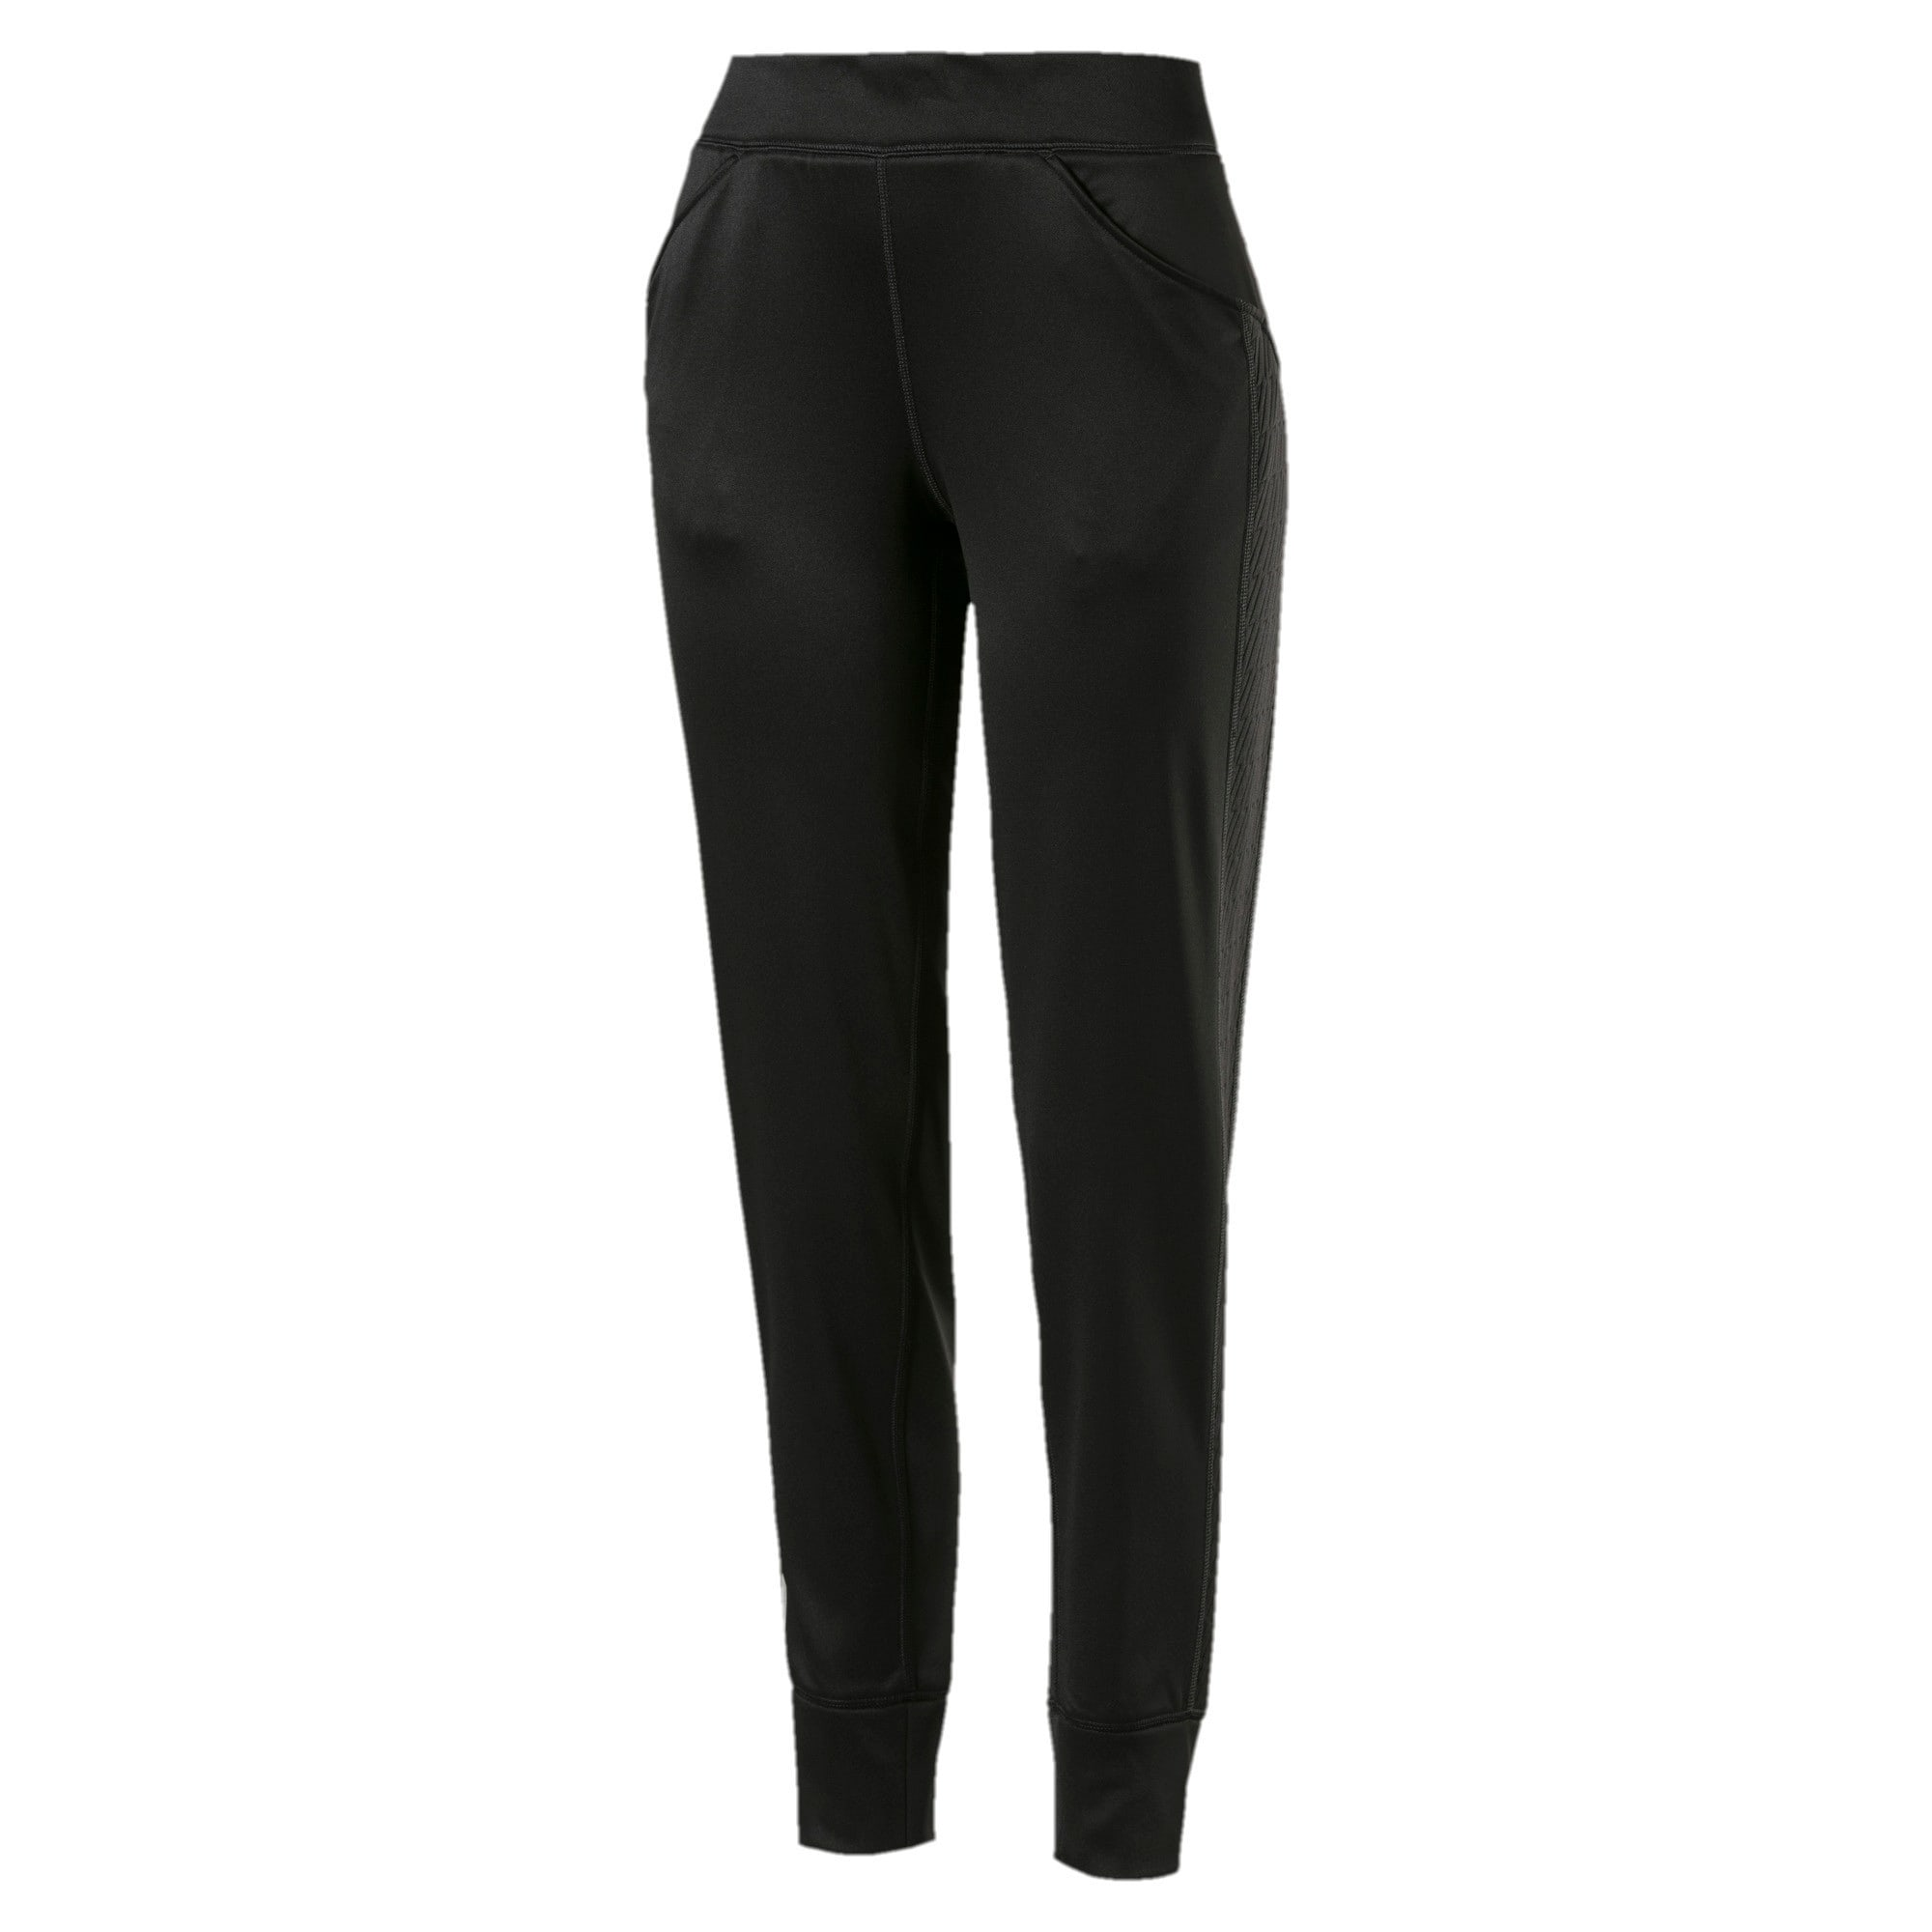 Thumbnail 1 of After Glow Fleece Women's Training Sweatpants, Puma Black, medium-IND